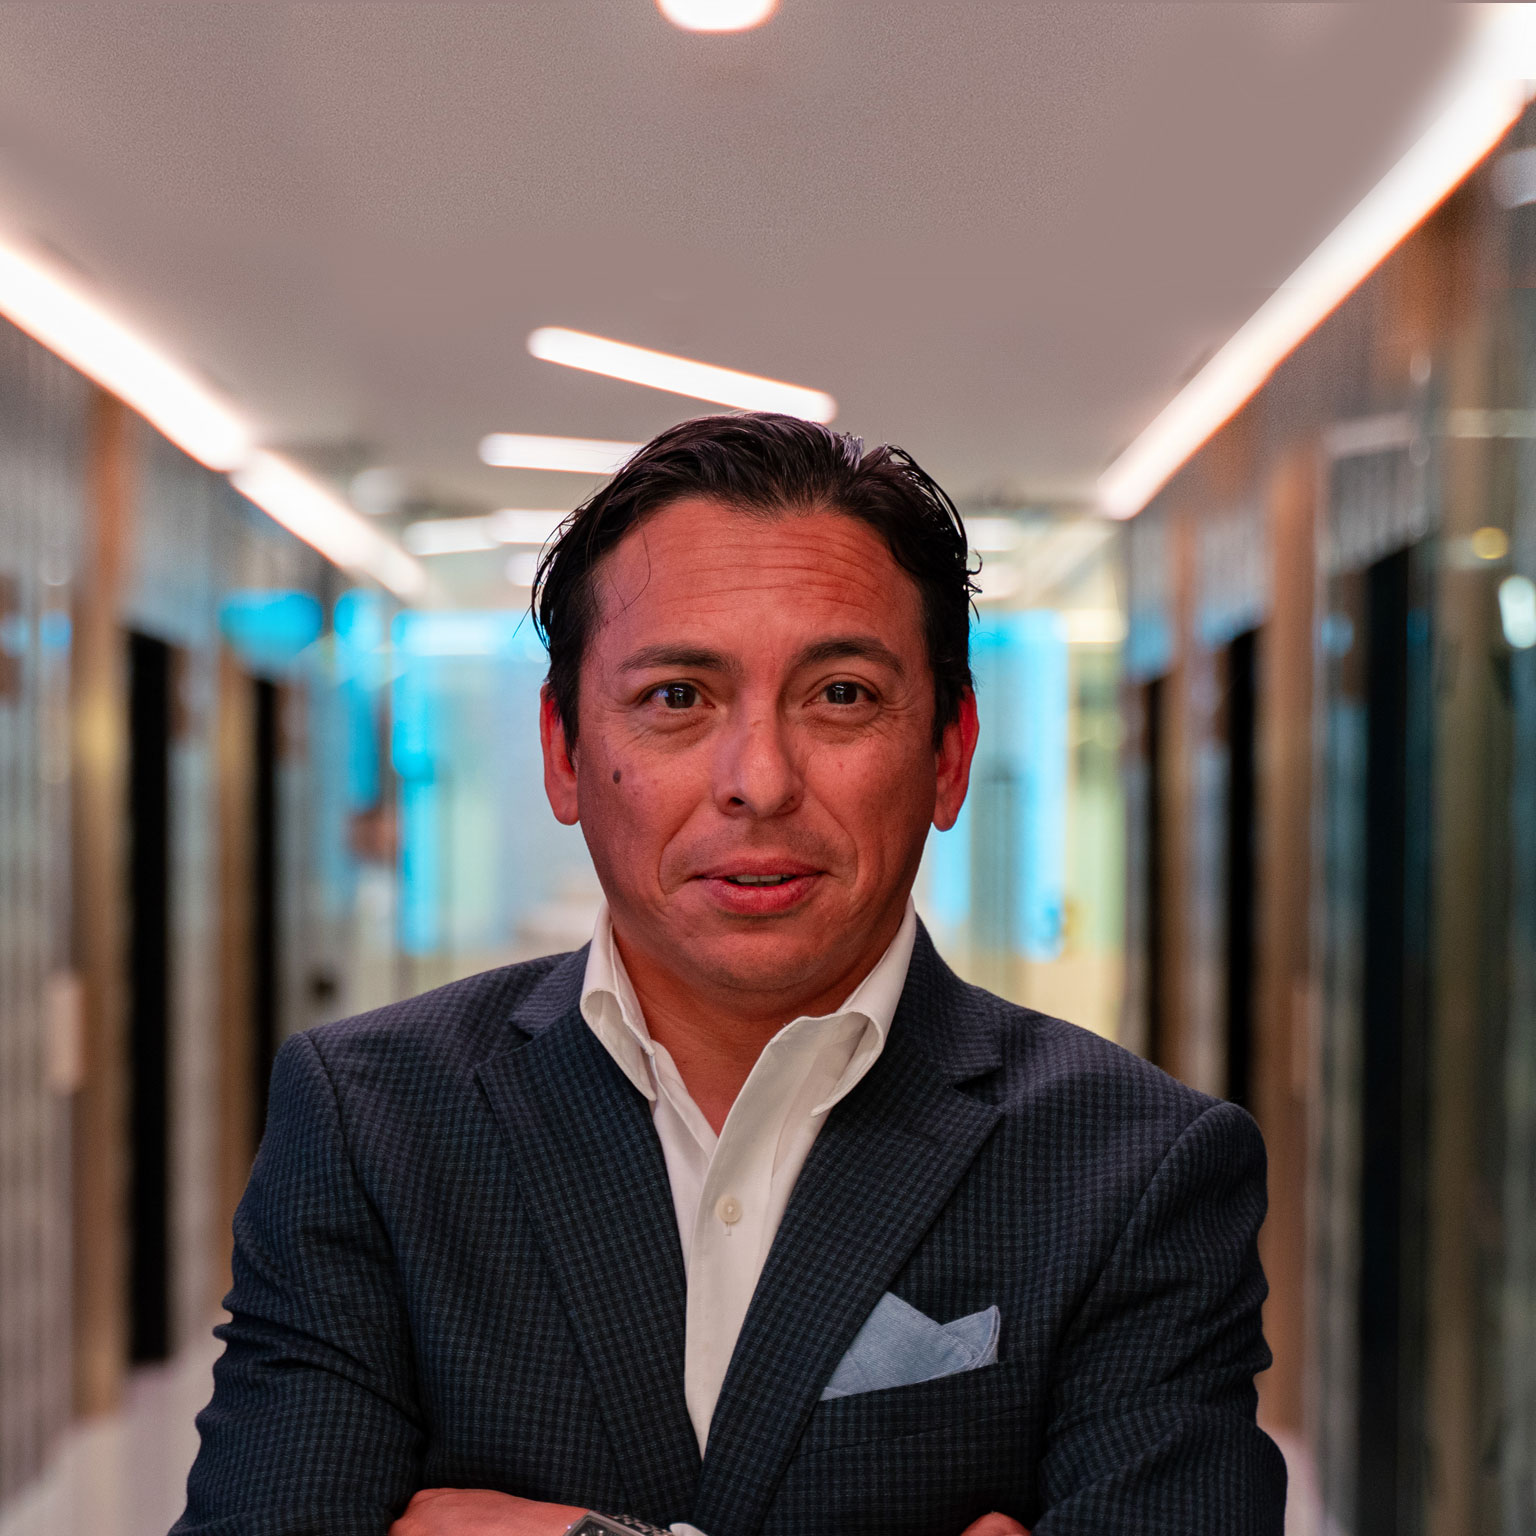 'retailers-as-experience-designers':-brian-solis-on-shopping-in-2030